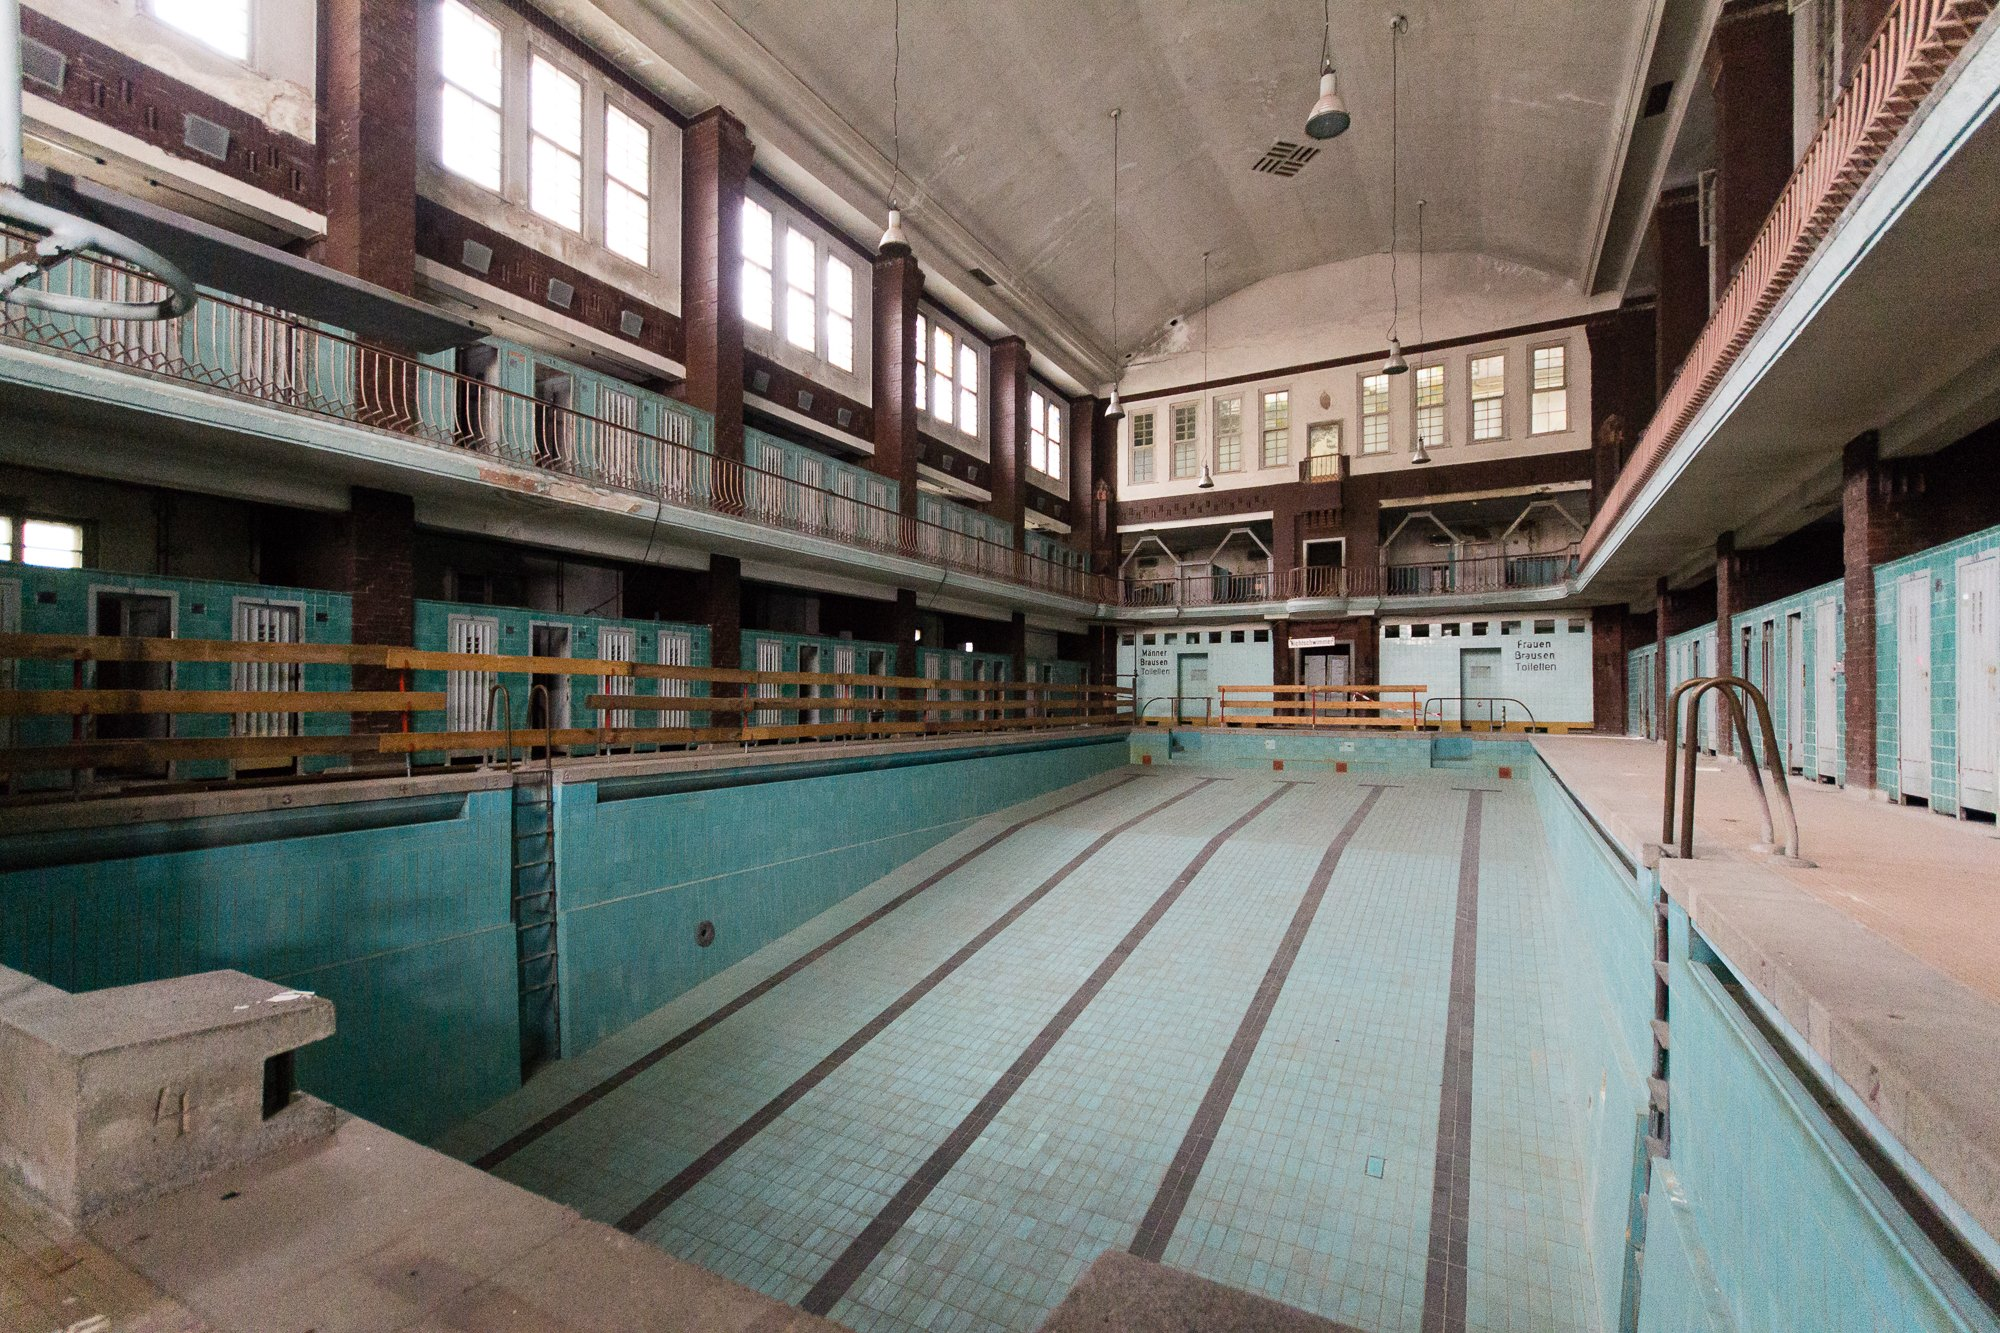 Swimming Pools In Berlin Abandoned Berlin Photographs From An Urban Explorer